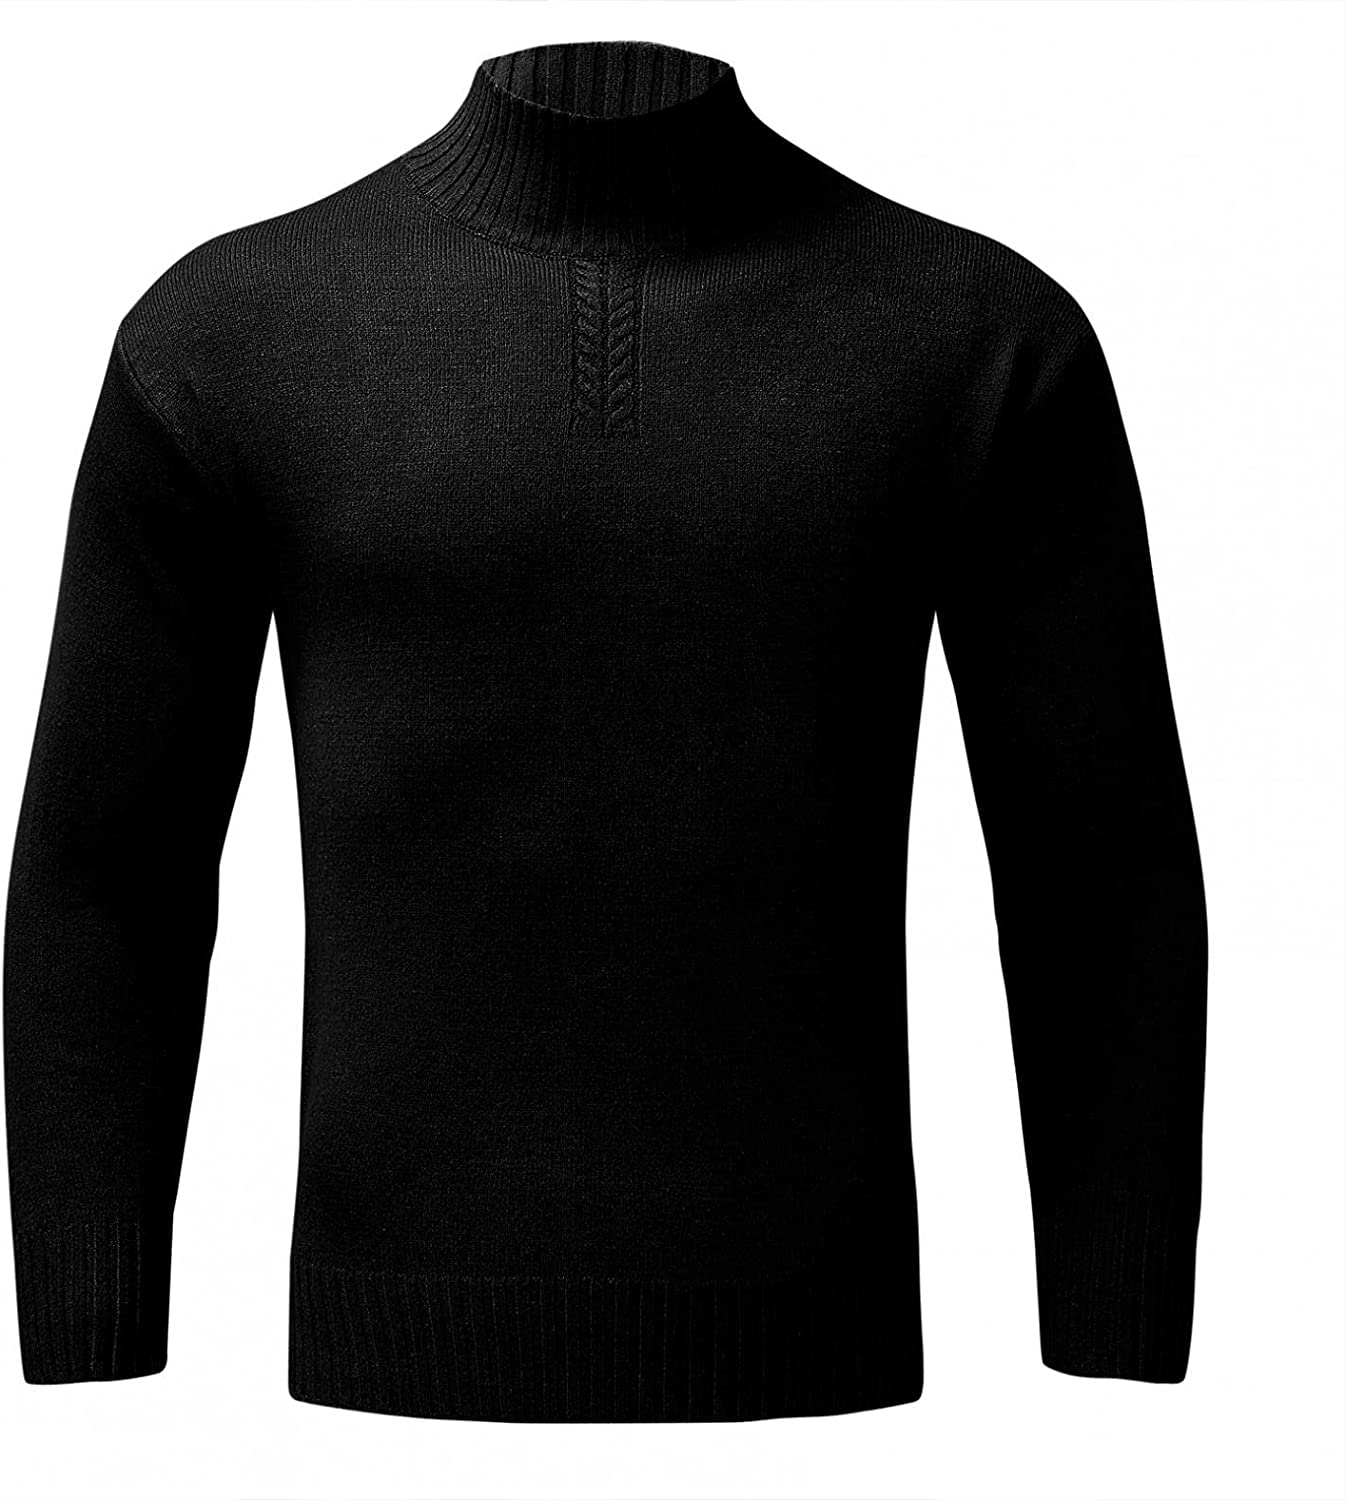 Huangse Classic Cable Knit Sweater for Men Women Solid Color Turtleneck Knitted Pullover Long Sleeve Knit Jumper Sweaters